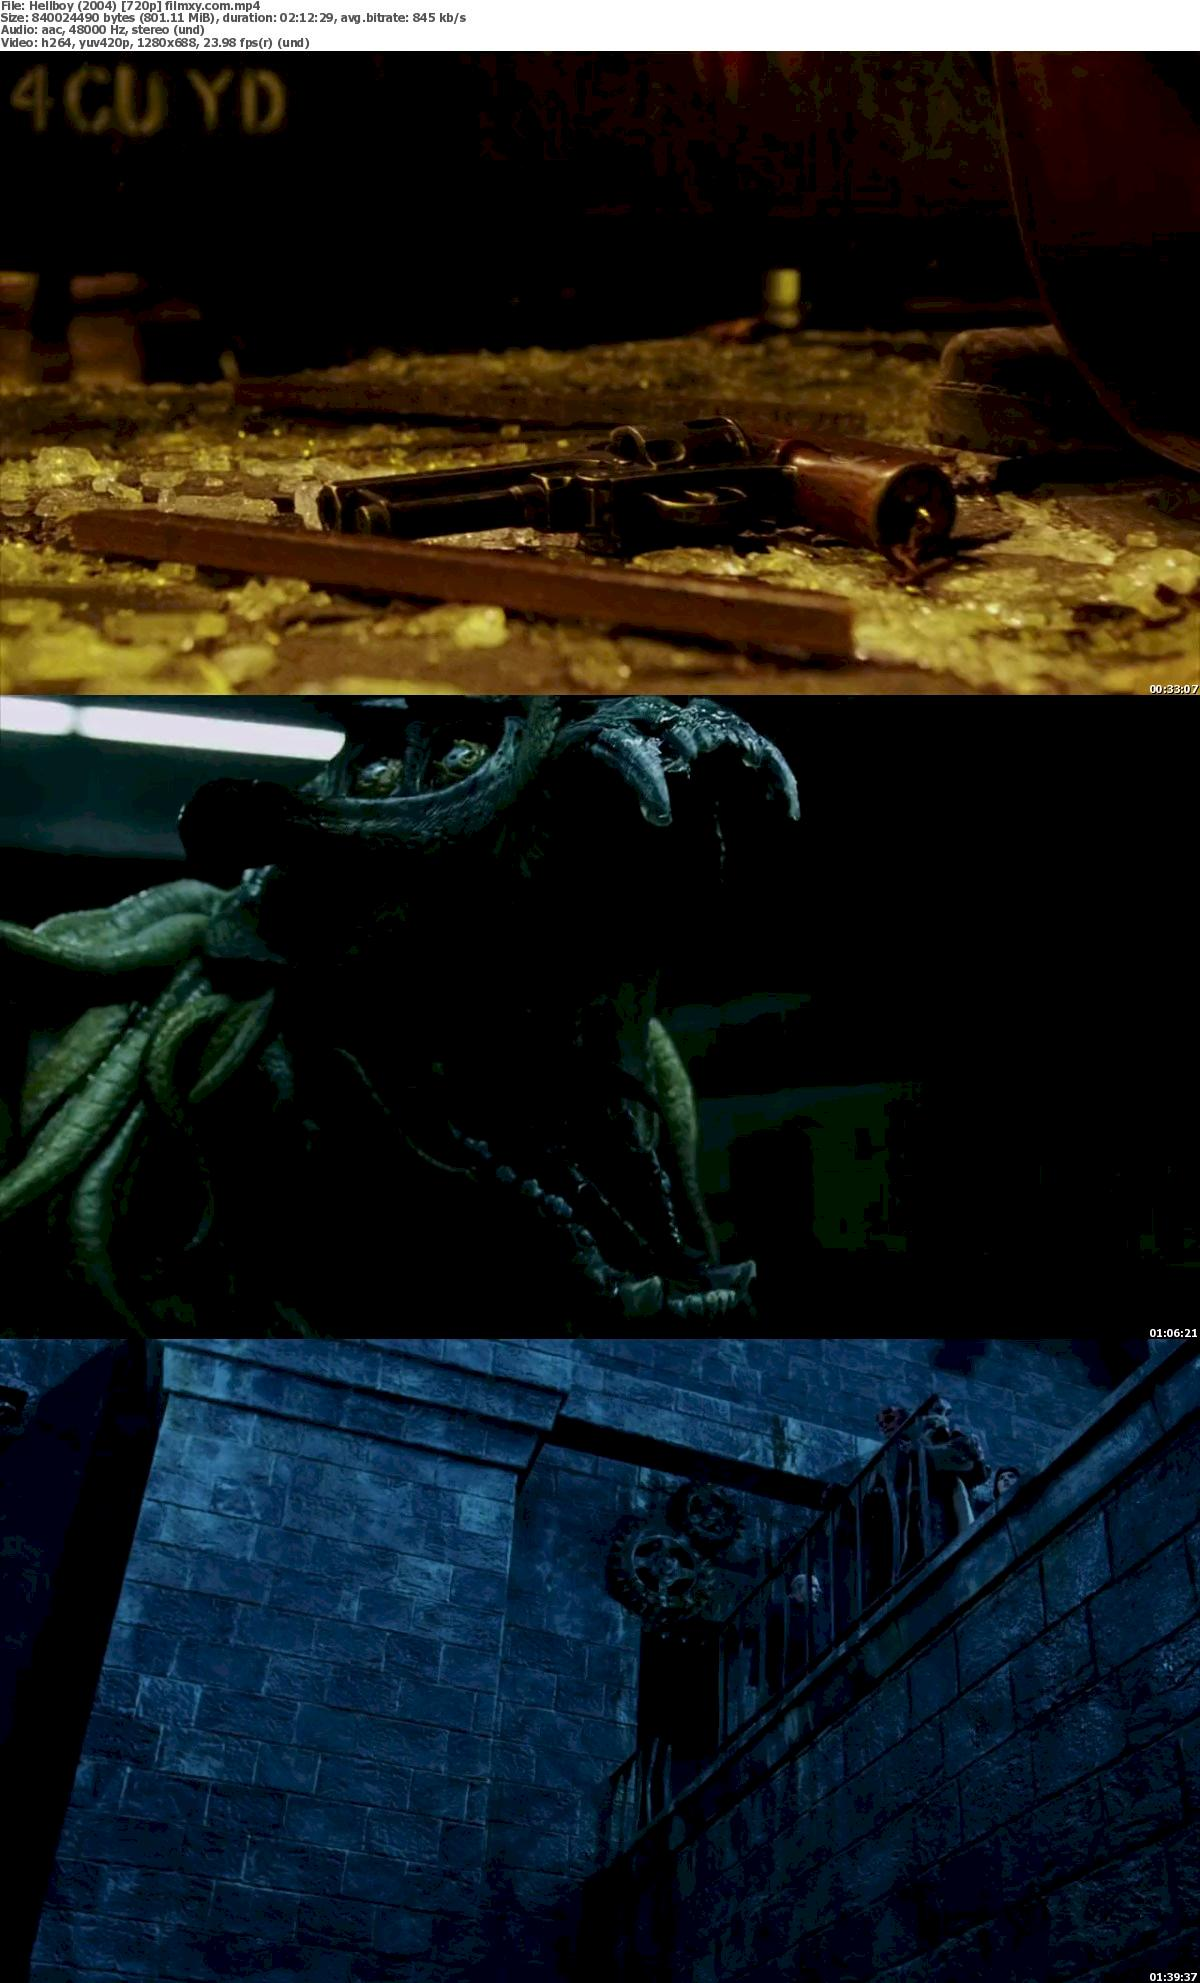 Hellboy (2004) 720p & 1080p Bluray Free Download 720p Screenshot